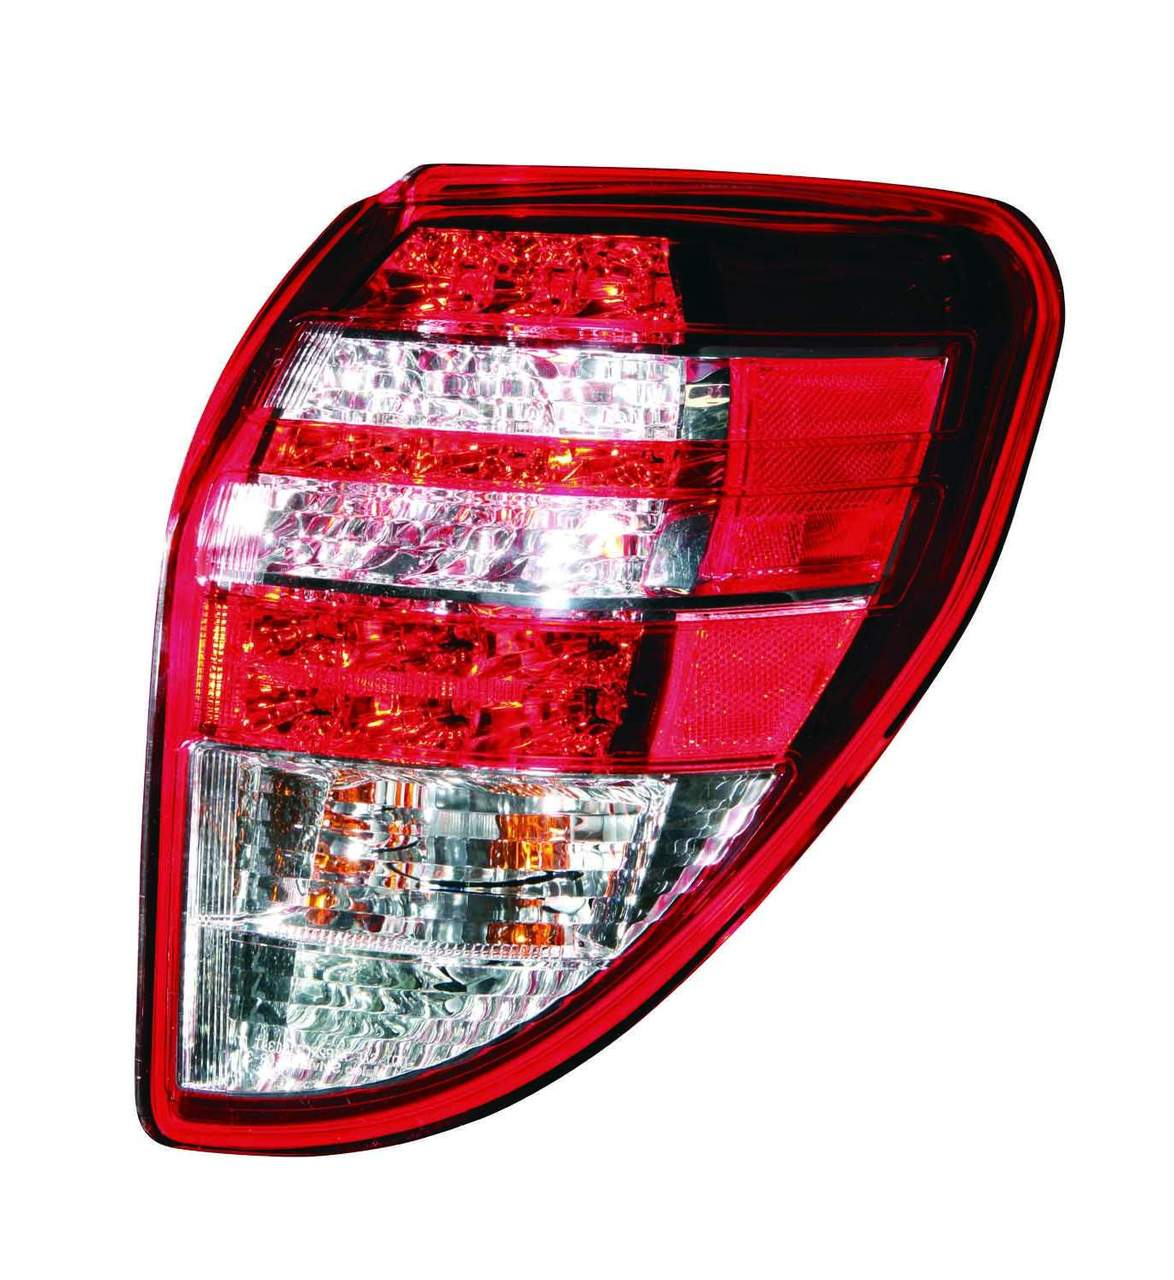 Toyota RAV4 2009 2010 2011 2012 tail light right passenger